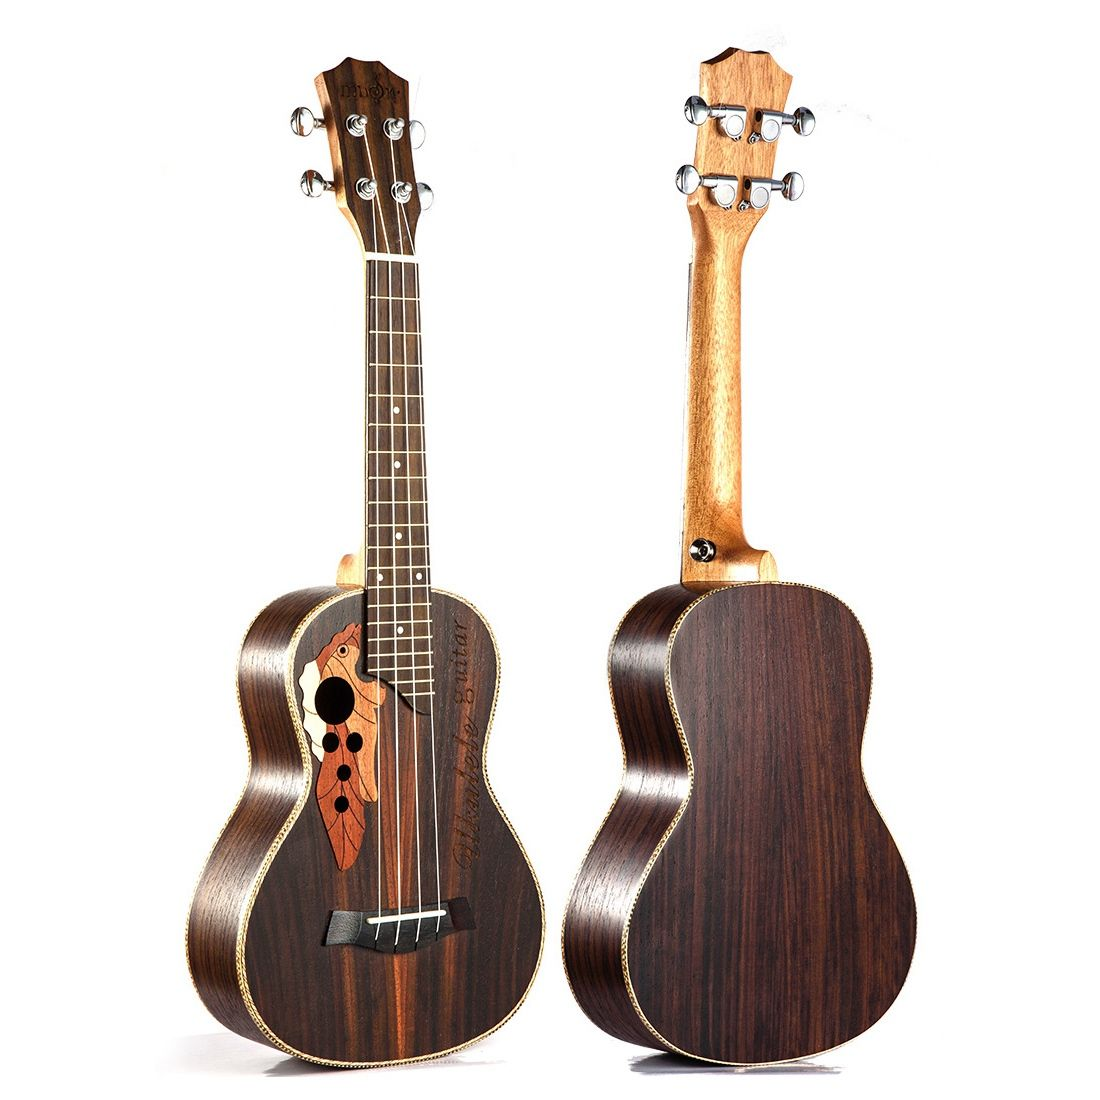 Ukulele 23 Acoustic Ukulele 4 Strings Guitar Musical Stringed Instrument Different Types Guitarra guitar Musical Instruments high quality 38 acoustic guitar 38 18 high quality guitarra musical instruments with guitar strings